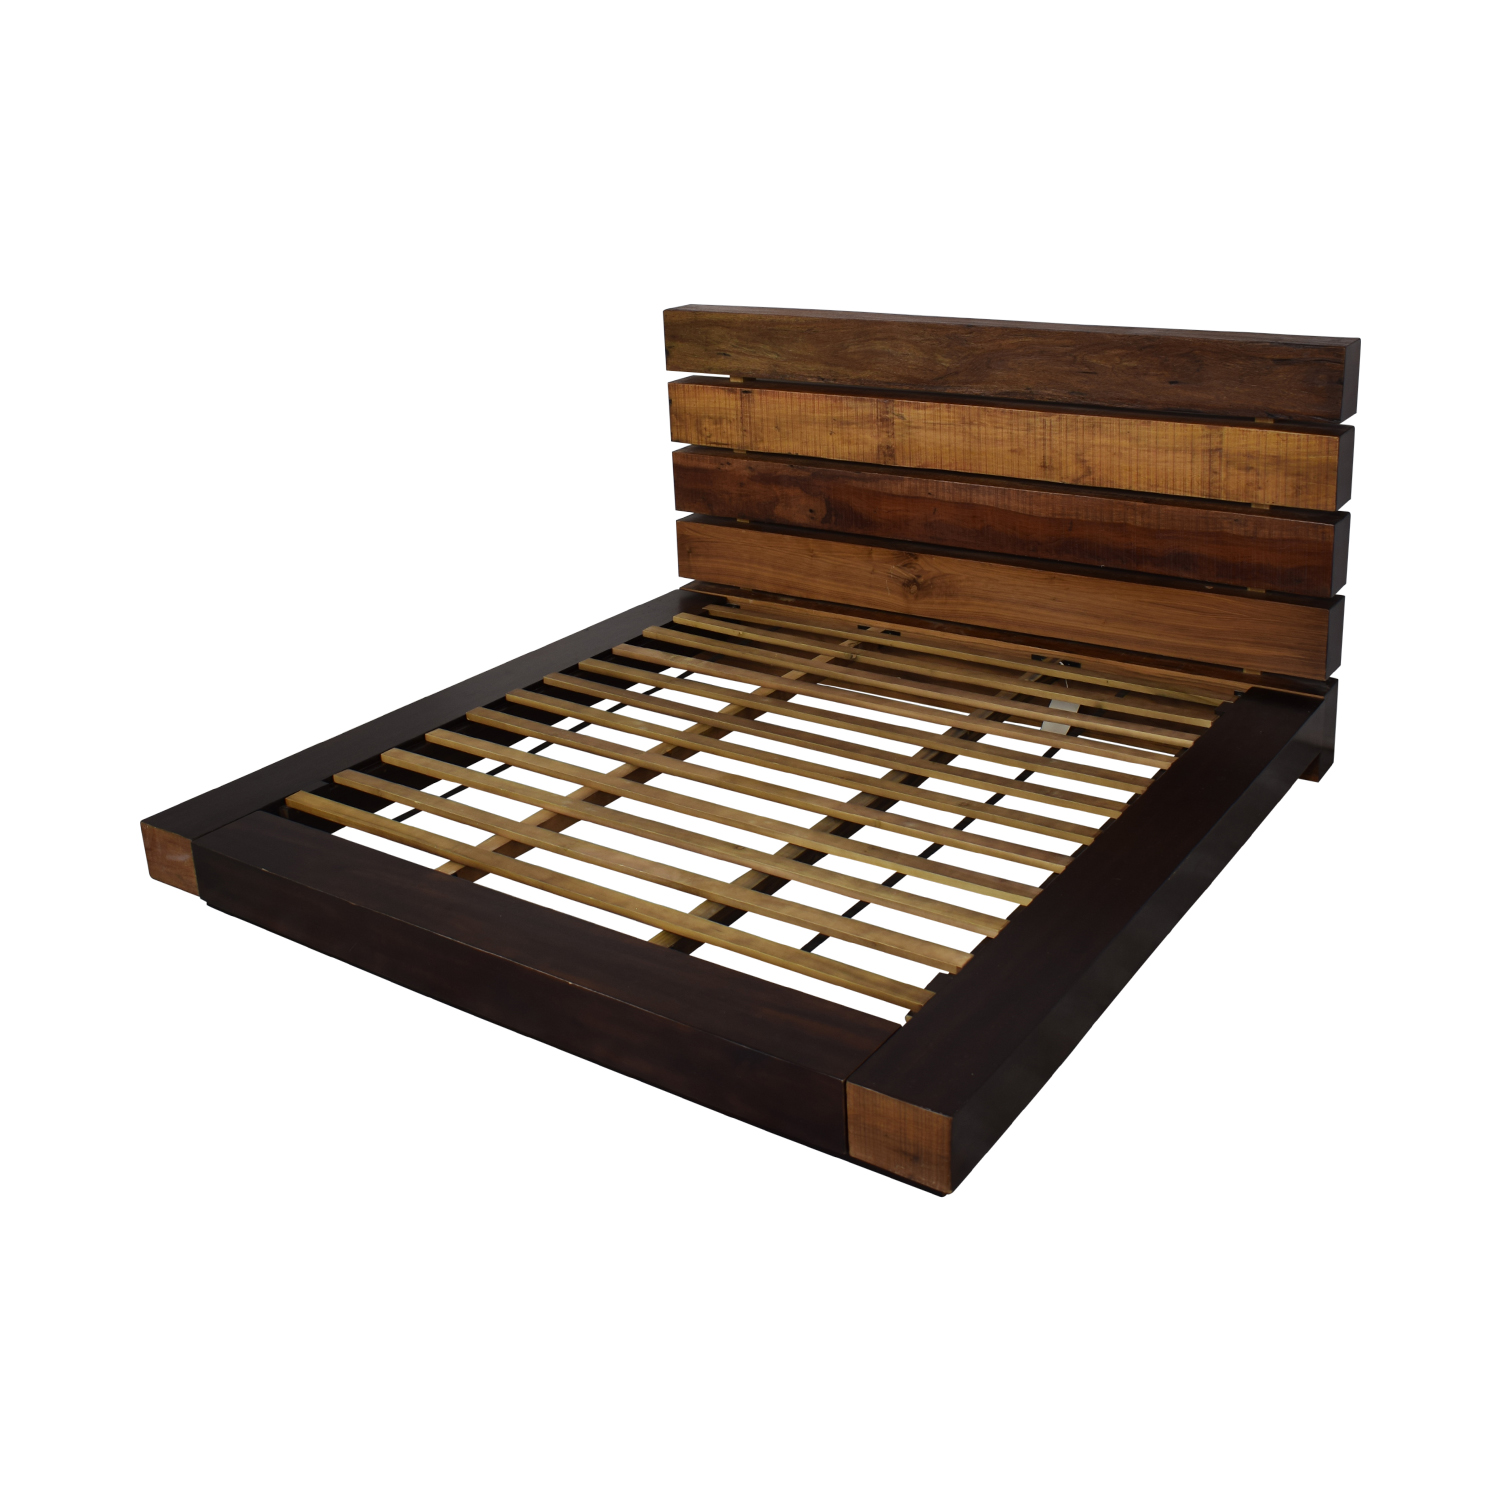 ABC Carpet & Home ABC Carpet &  Home King Size Edge Rustic Slat Bed used